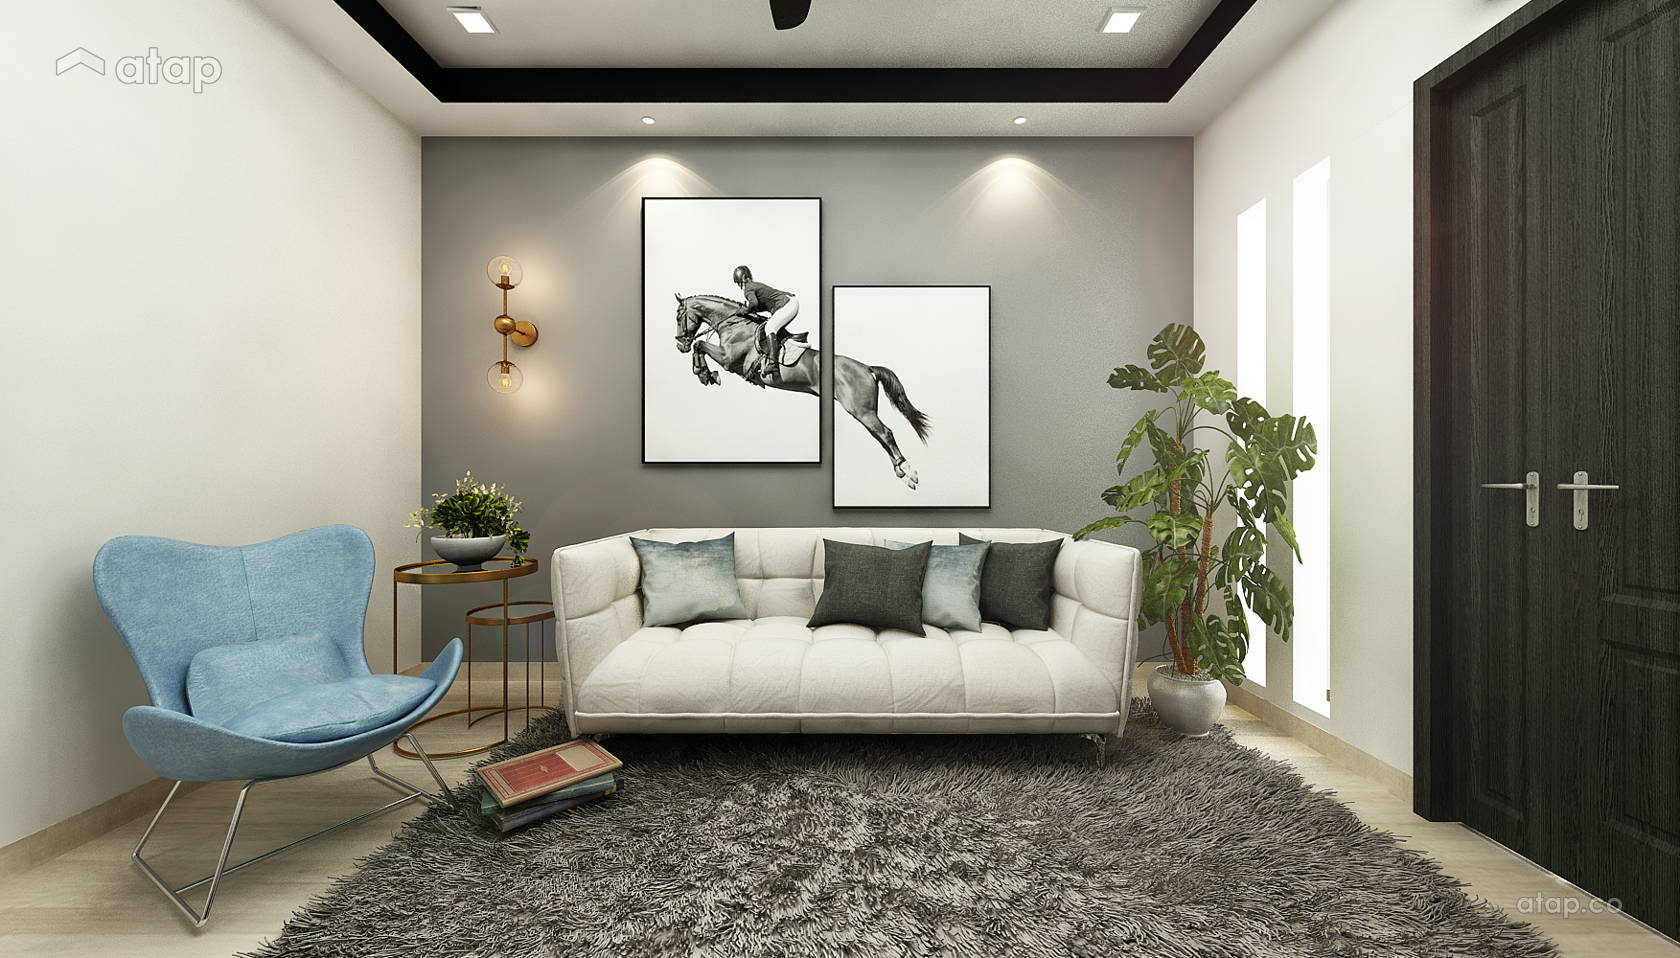 Single Storey Terrace House Ss12 Architectural Interior Design Renovation Ideas Photos And Price In Malaysia Atap Co